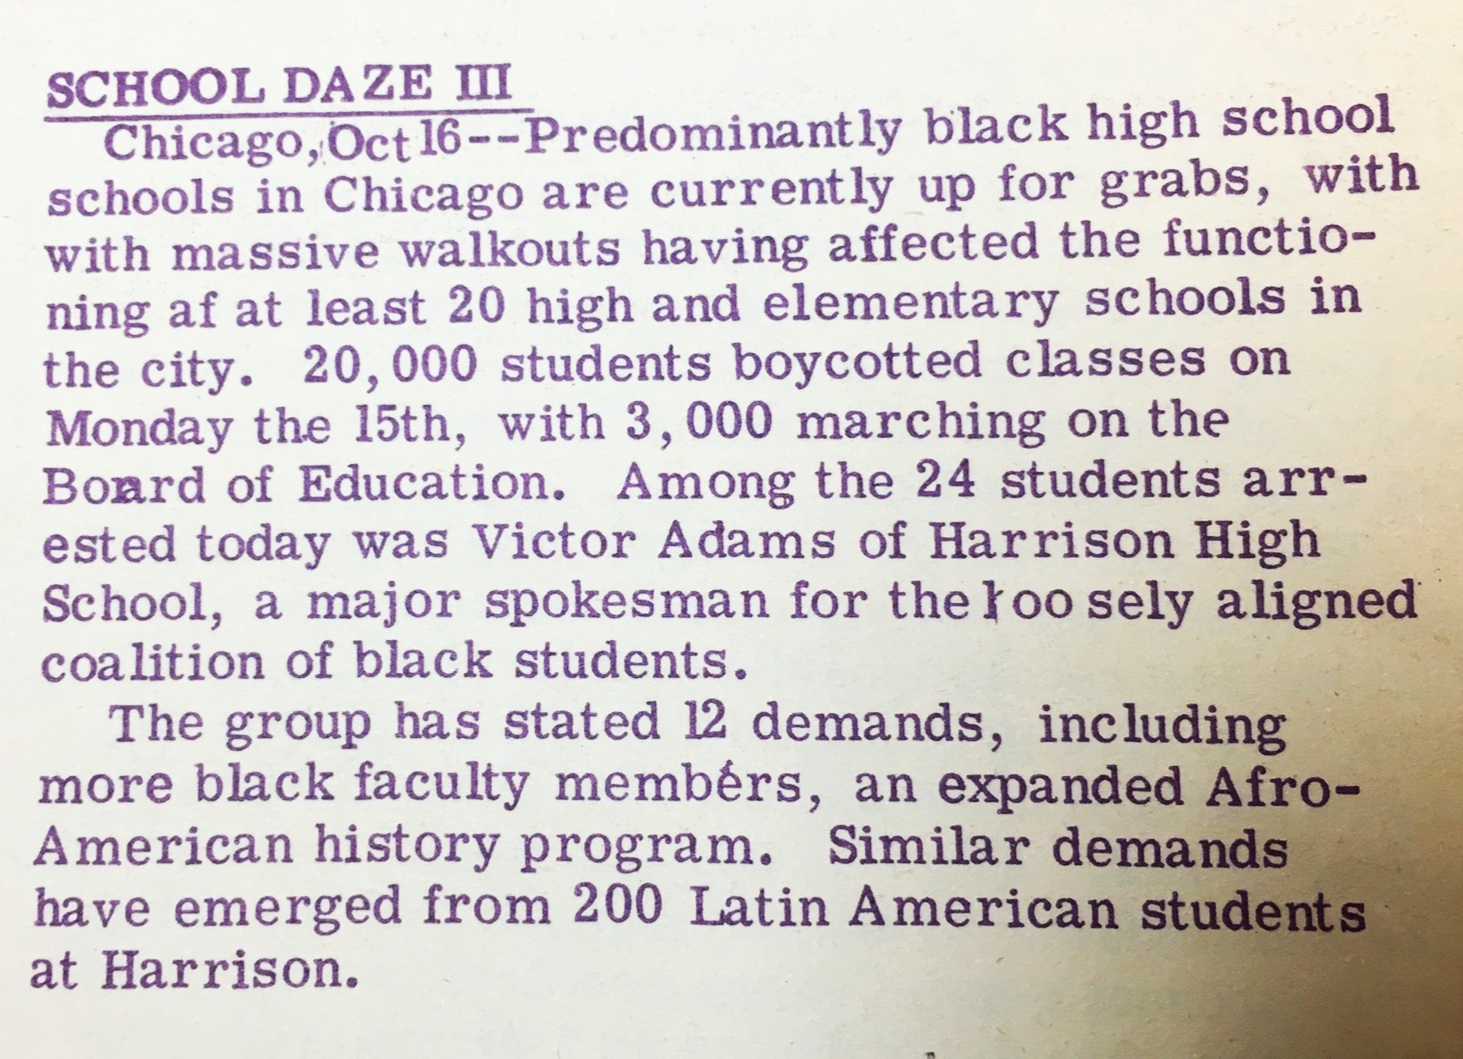 The Chicago Seed, 1968, reporting on the massive student-led walkouts on the west side of Chicago